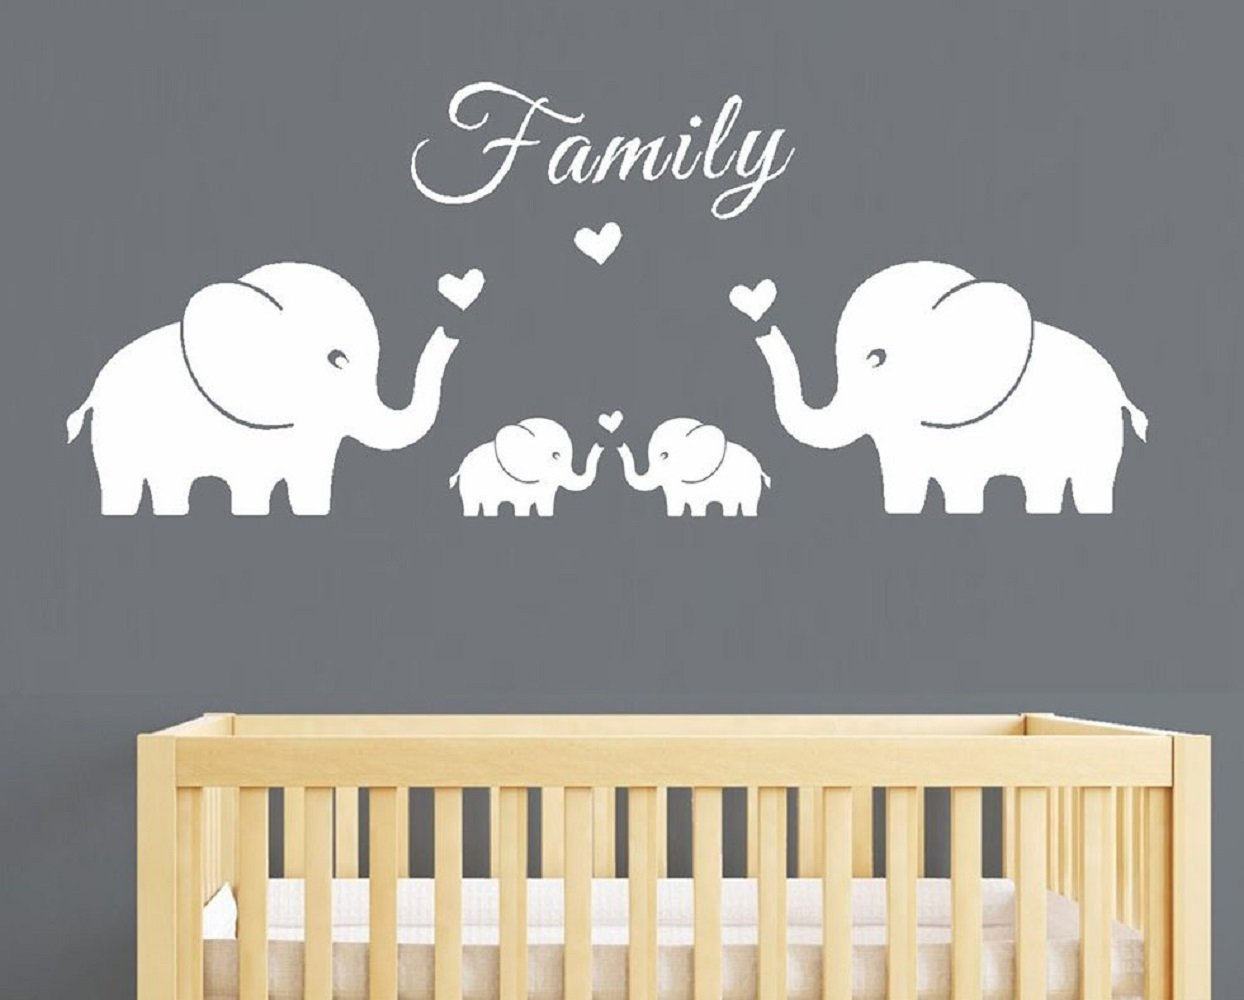 Four Elephants Family Wall Decal Love Hearts Family Words Baby Twins Vinyl Wall Decal Sticker For Baby Nursery Room Decor (Large 56''x20'', White)